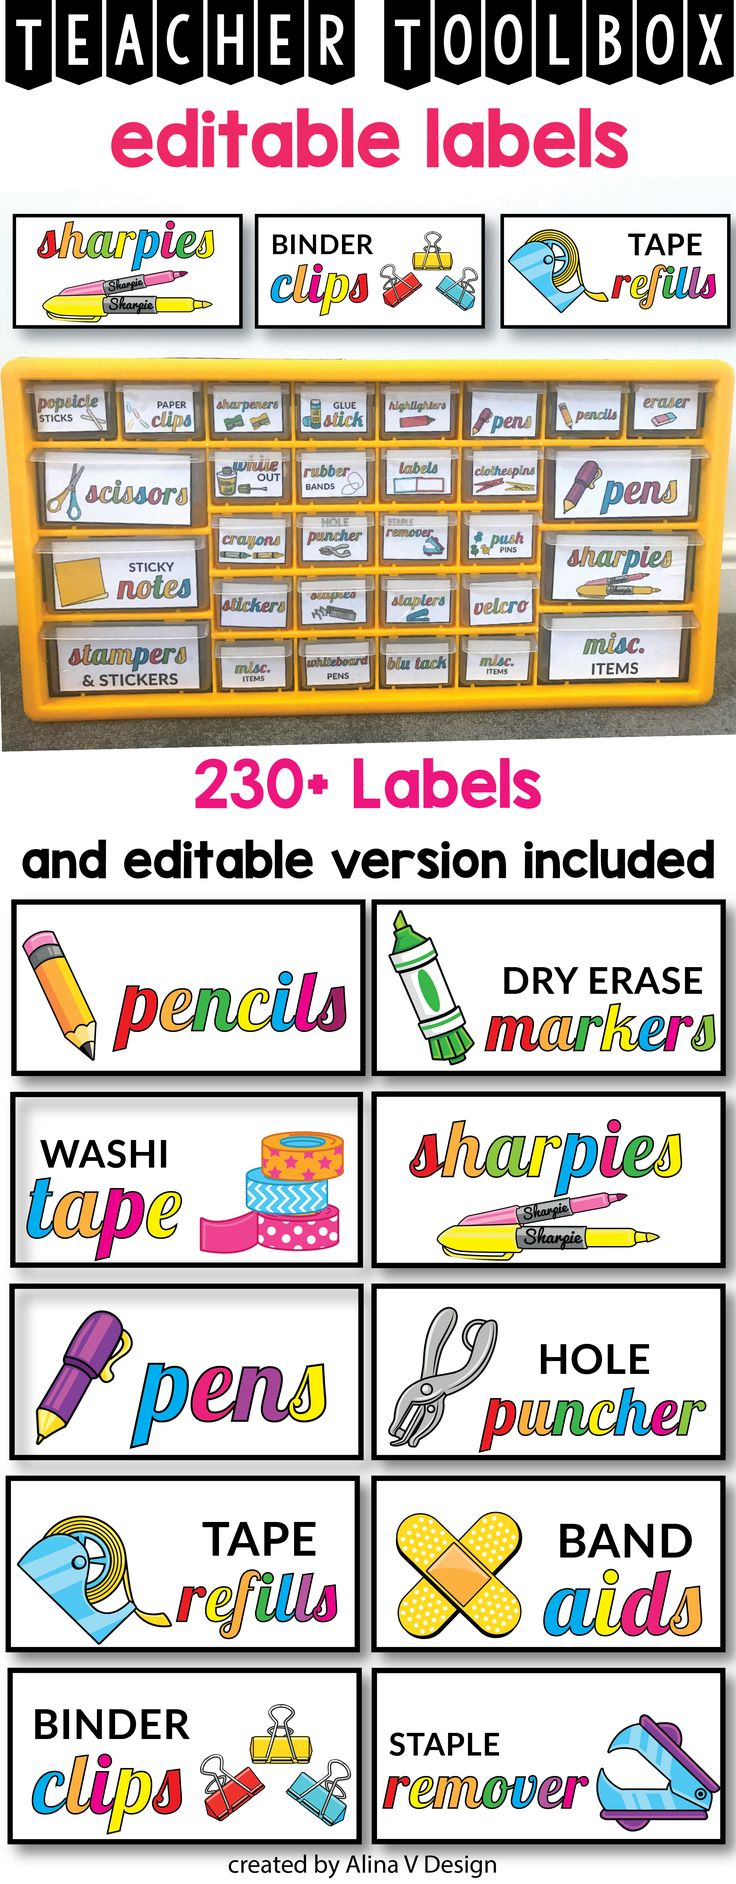 Bright teacher toolbox organizer printable will help you decorate your classroom in a classy and modern way on a budget. The bright and colorful labels will add a calming tone and will work perfectly with other decor elements. If does not matter if you teach kindergarten, elementary or middle school, this classroom labels will add a pop of color in your class.